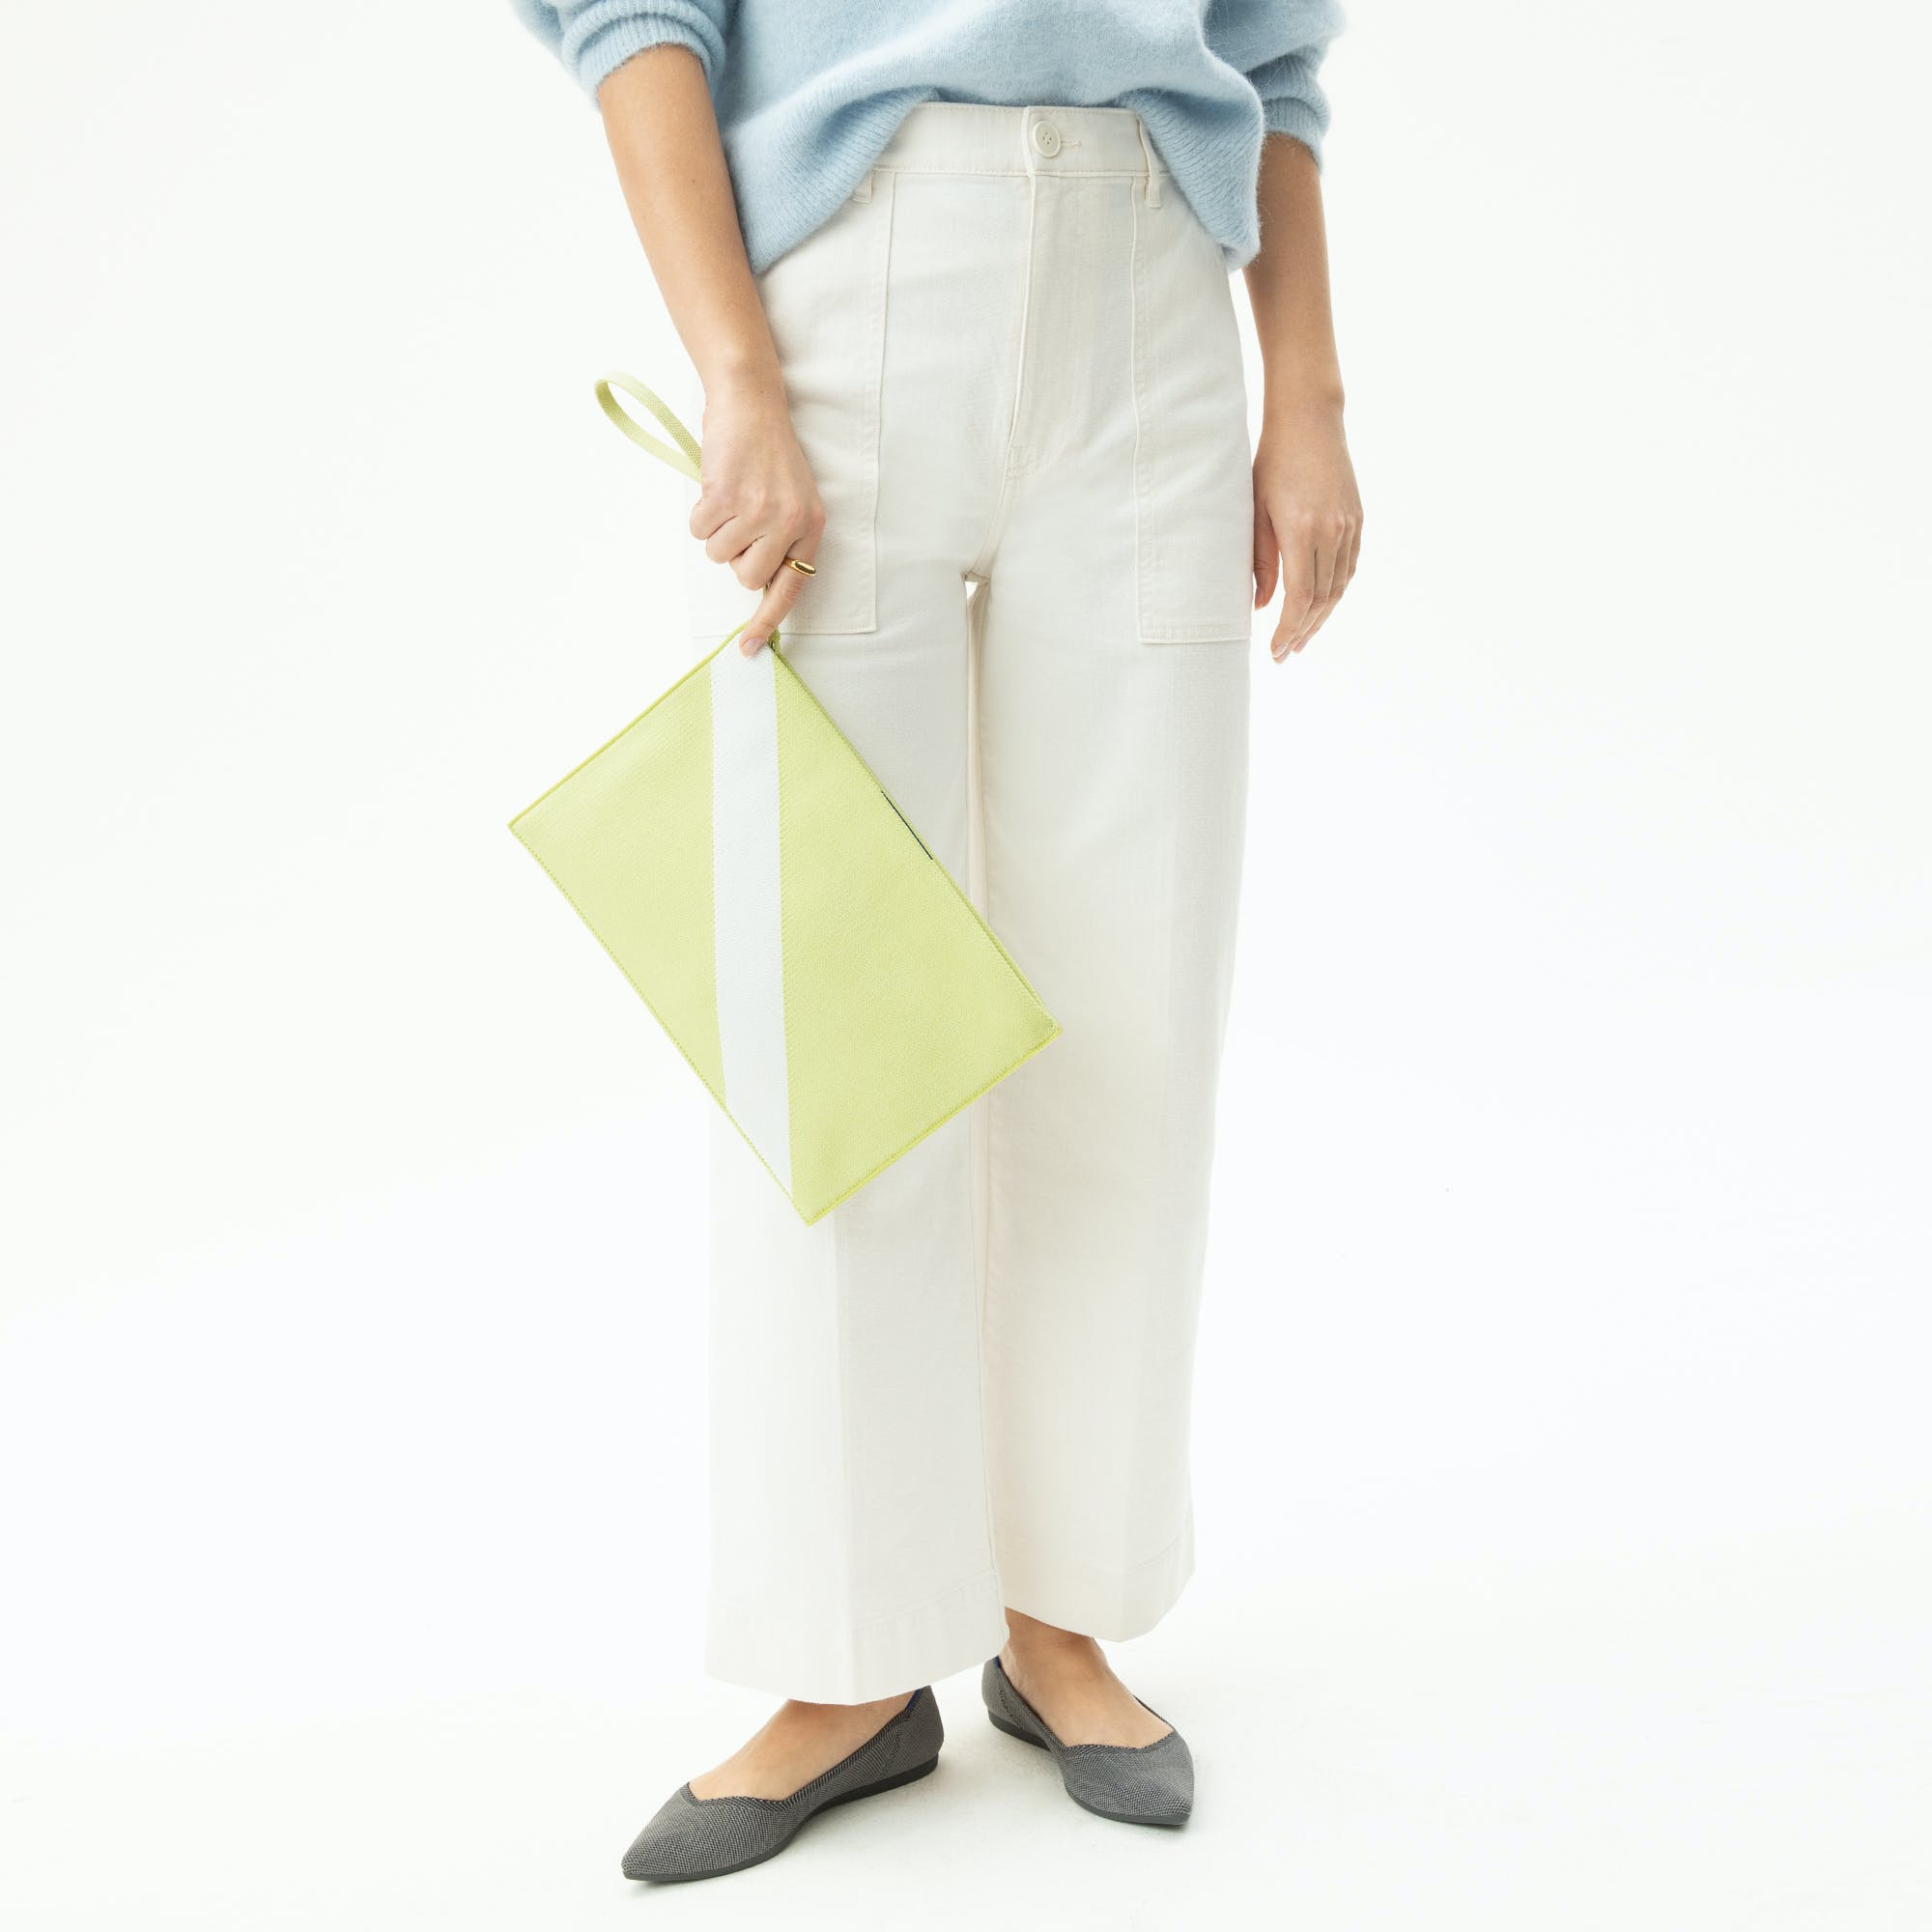 The Essential Pouch in Light Lime shown from the front.